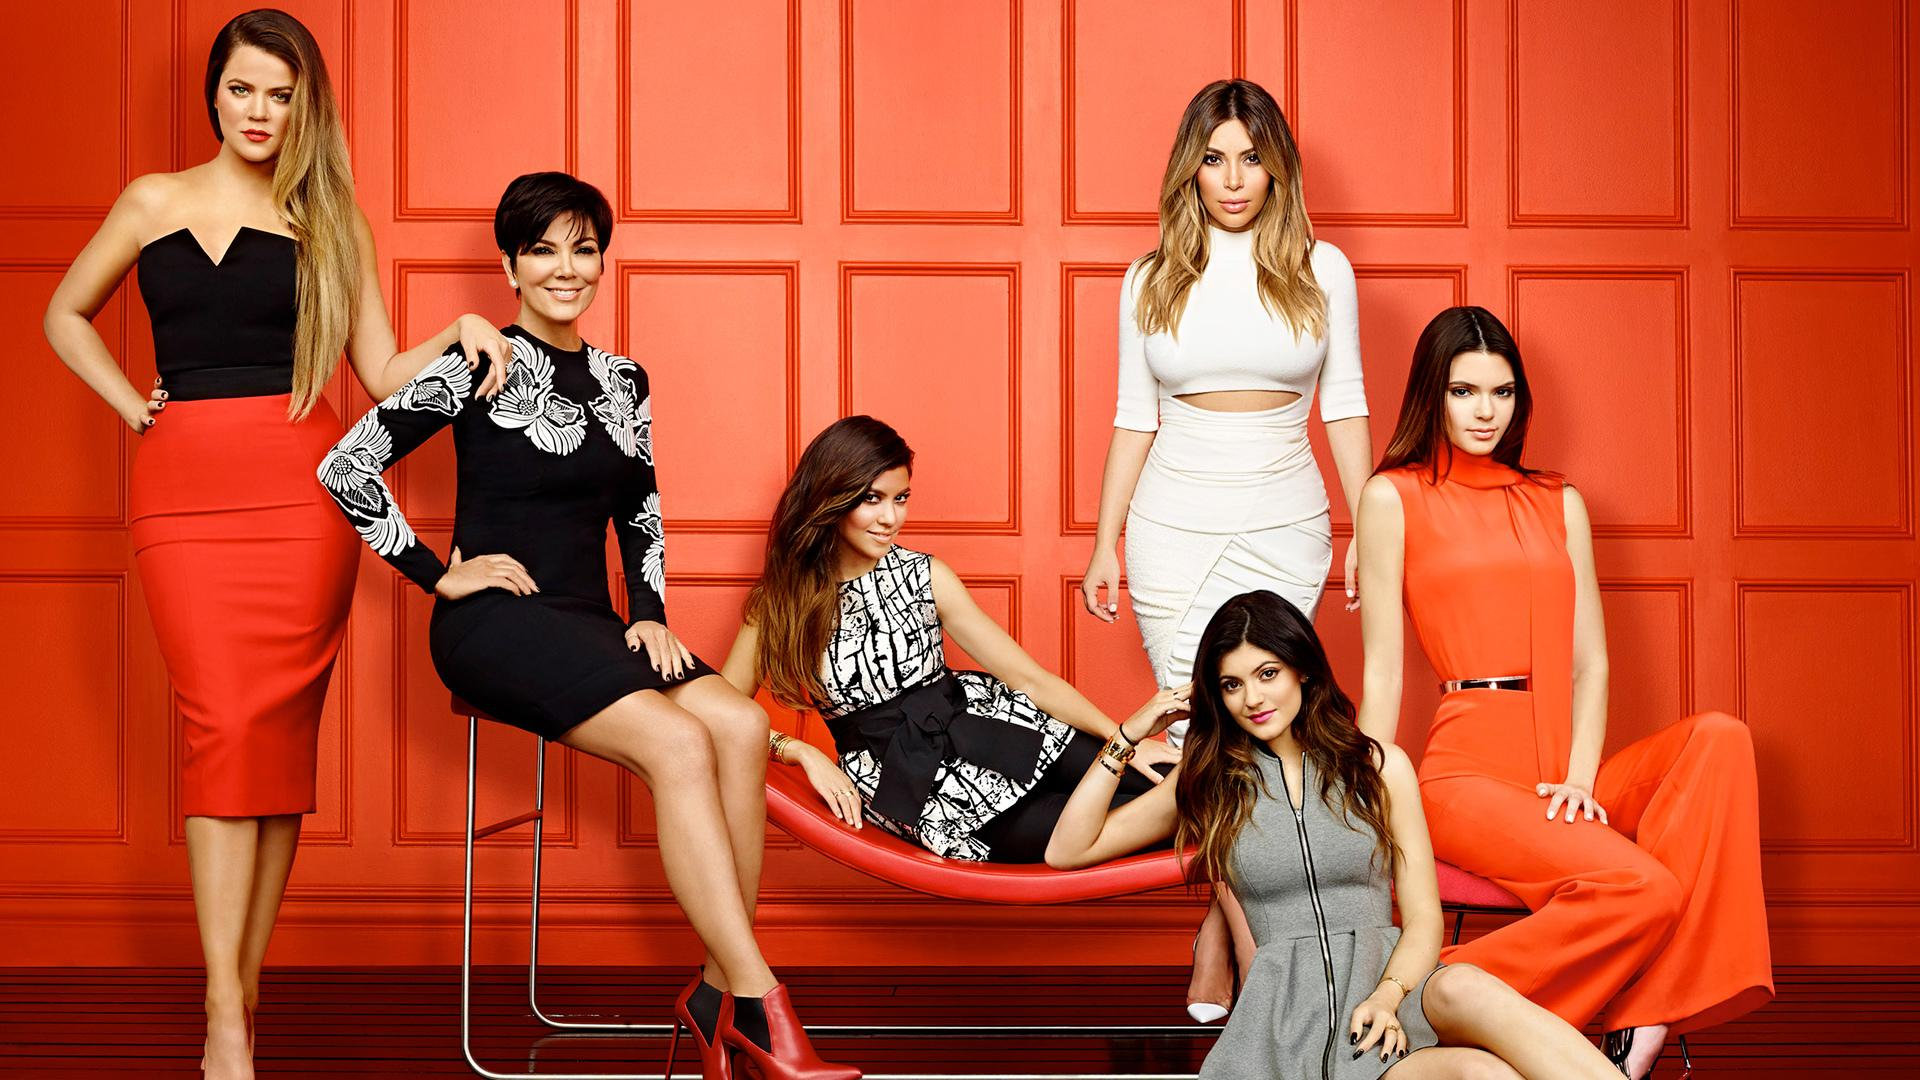 Keeping Up With The Kardashians wallpapers HD quality